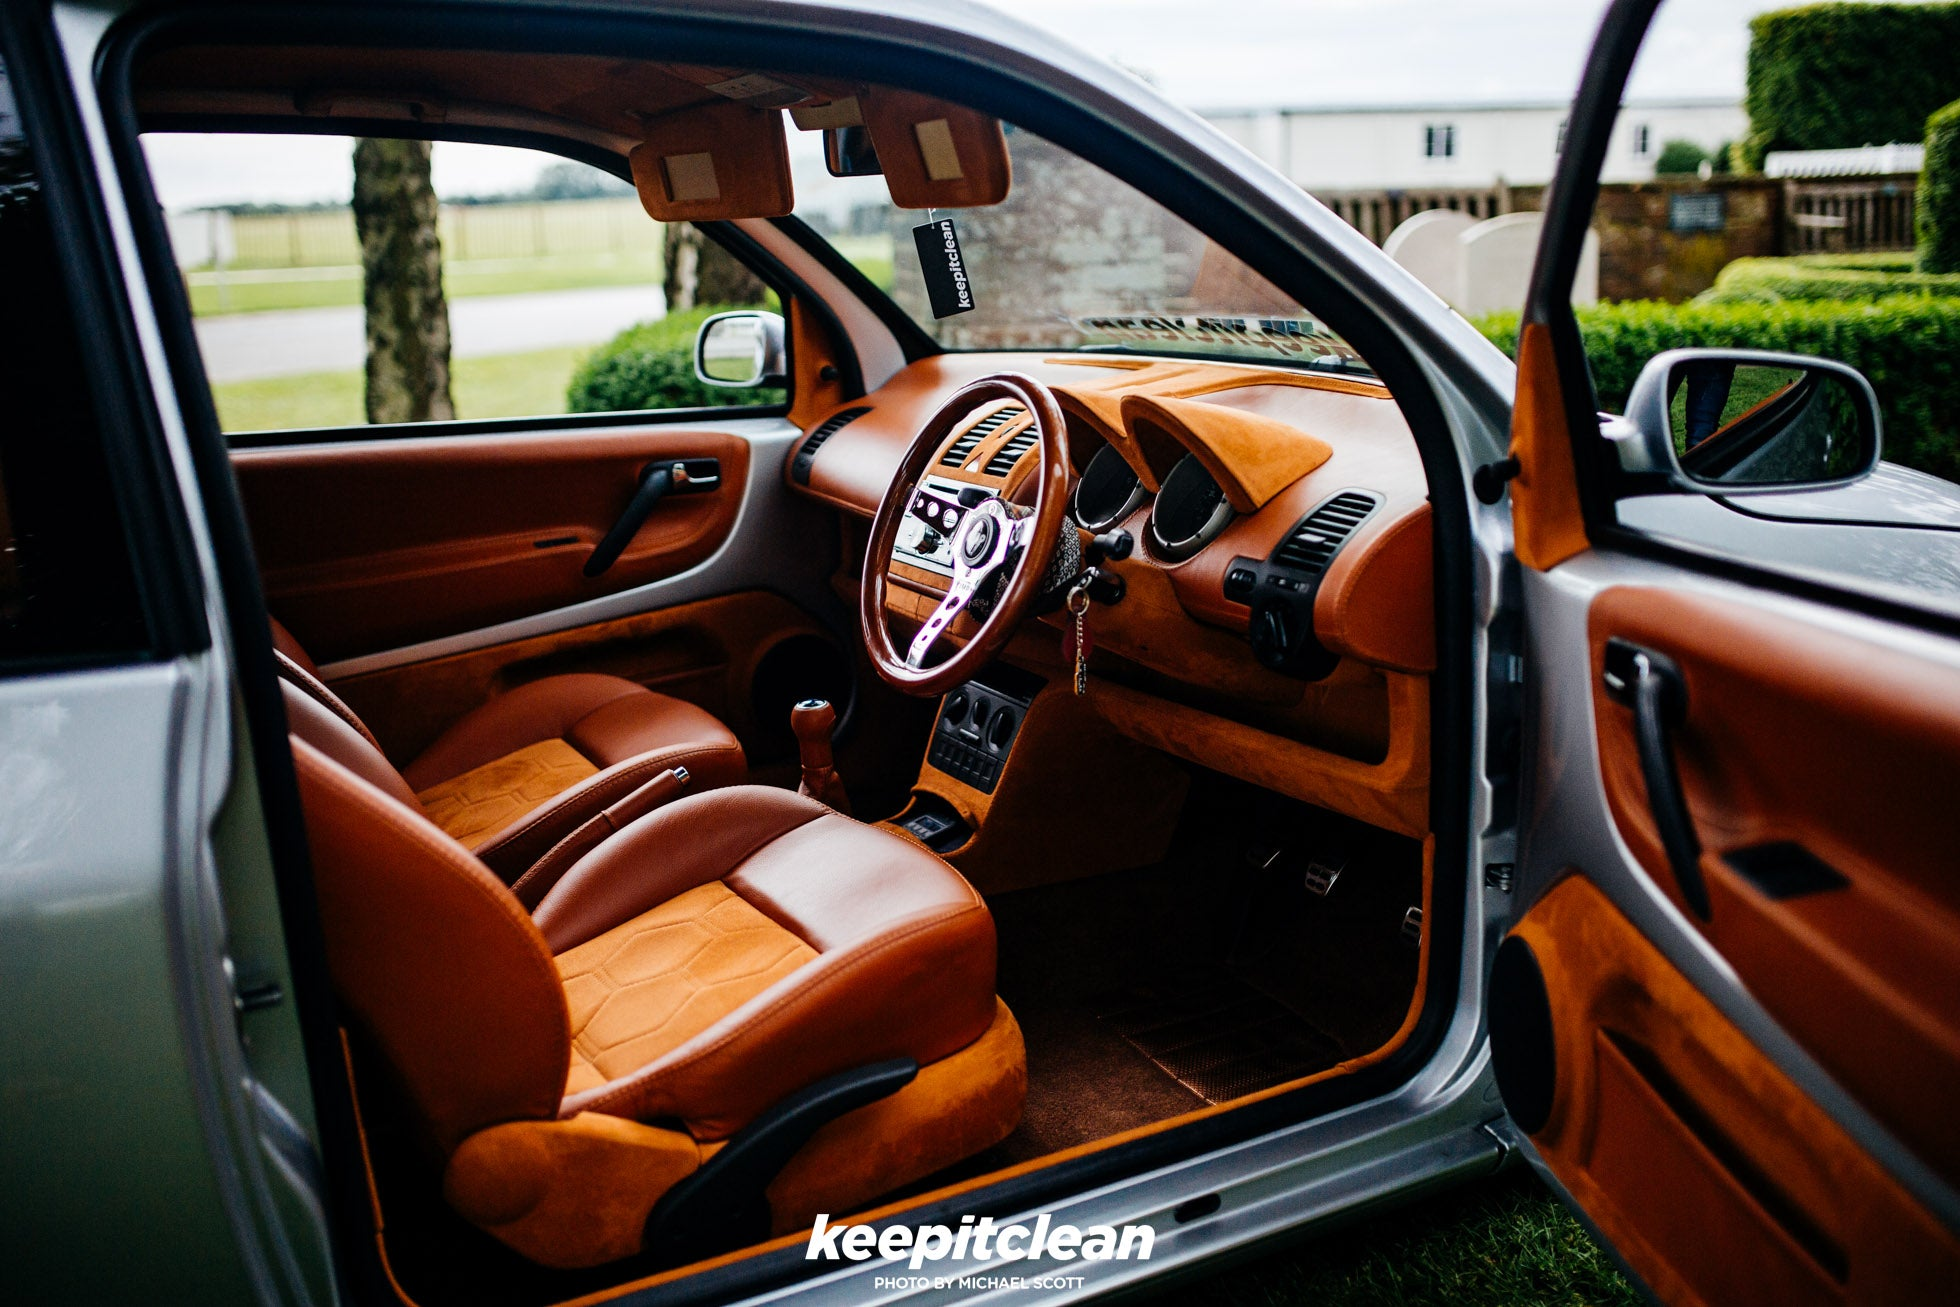 AARON WOULDS VW LUPO – keepitclean